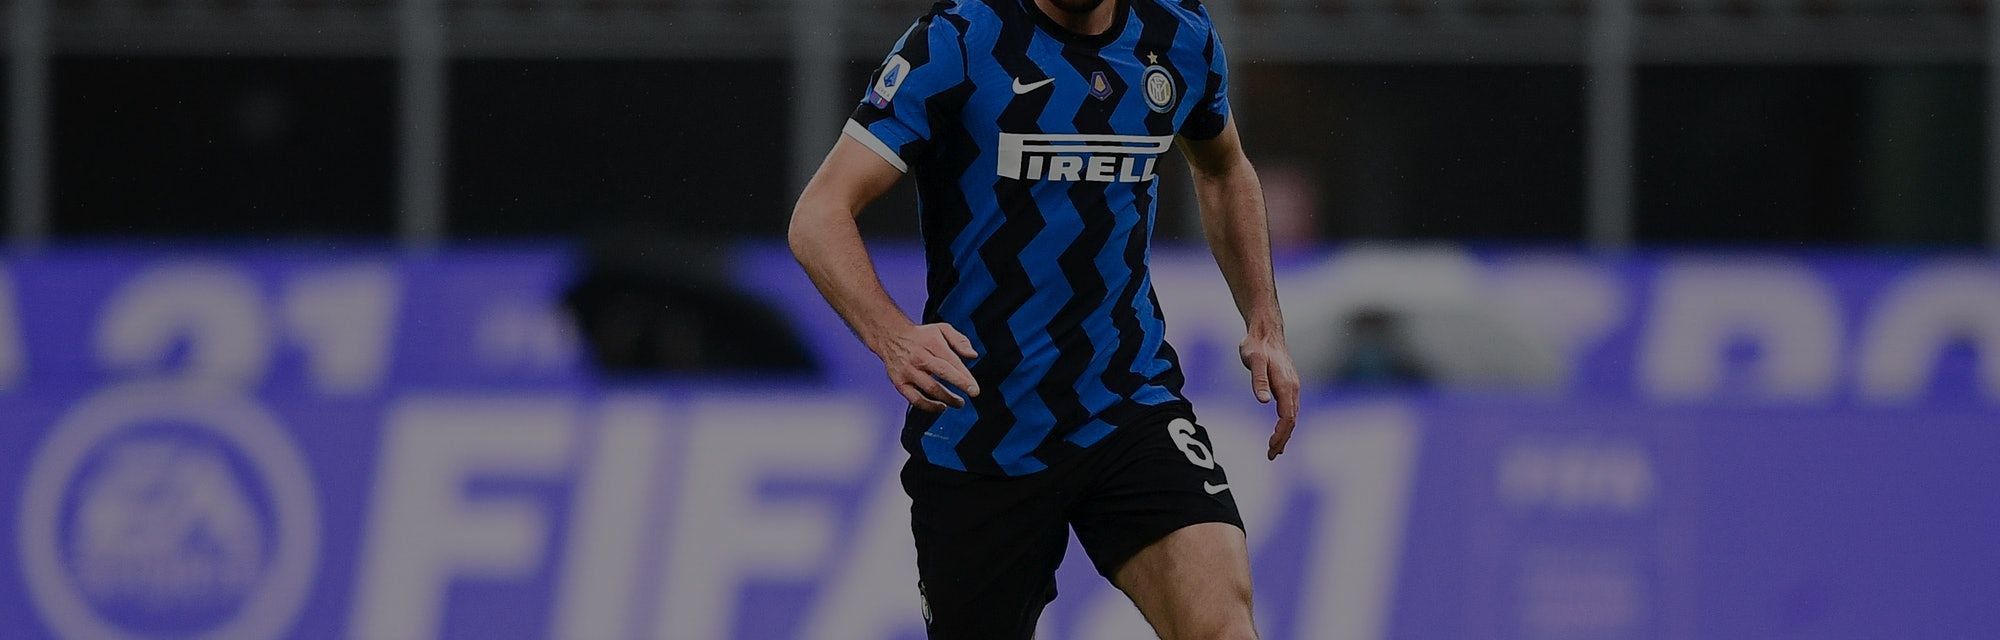 STADIO GIUSEPPE MEAZZA, MILAN, ITALY - 2020/12/20: Stefan de Vrij of FC Internazionale in action during the Serie A football match between FC Internazionale and Spezia Calcio. FC Internazionale won 2-1 over Spezia Calcio. (Photo by Nicolò Campo/LightRocket via Getty Images)